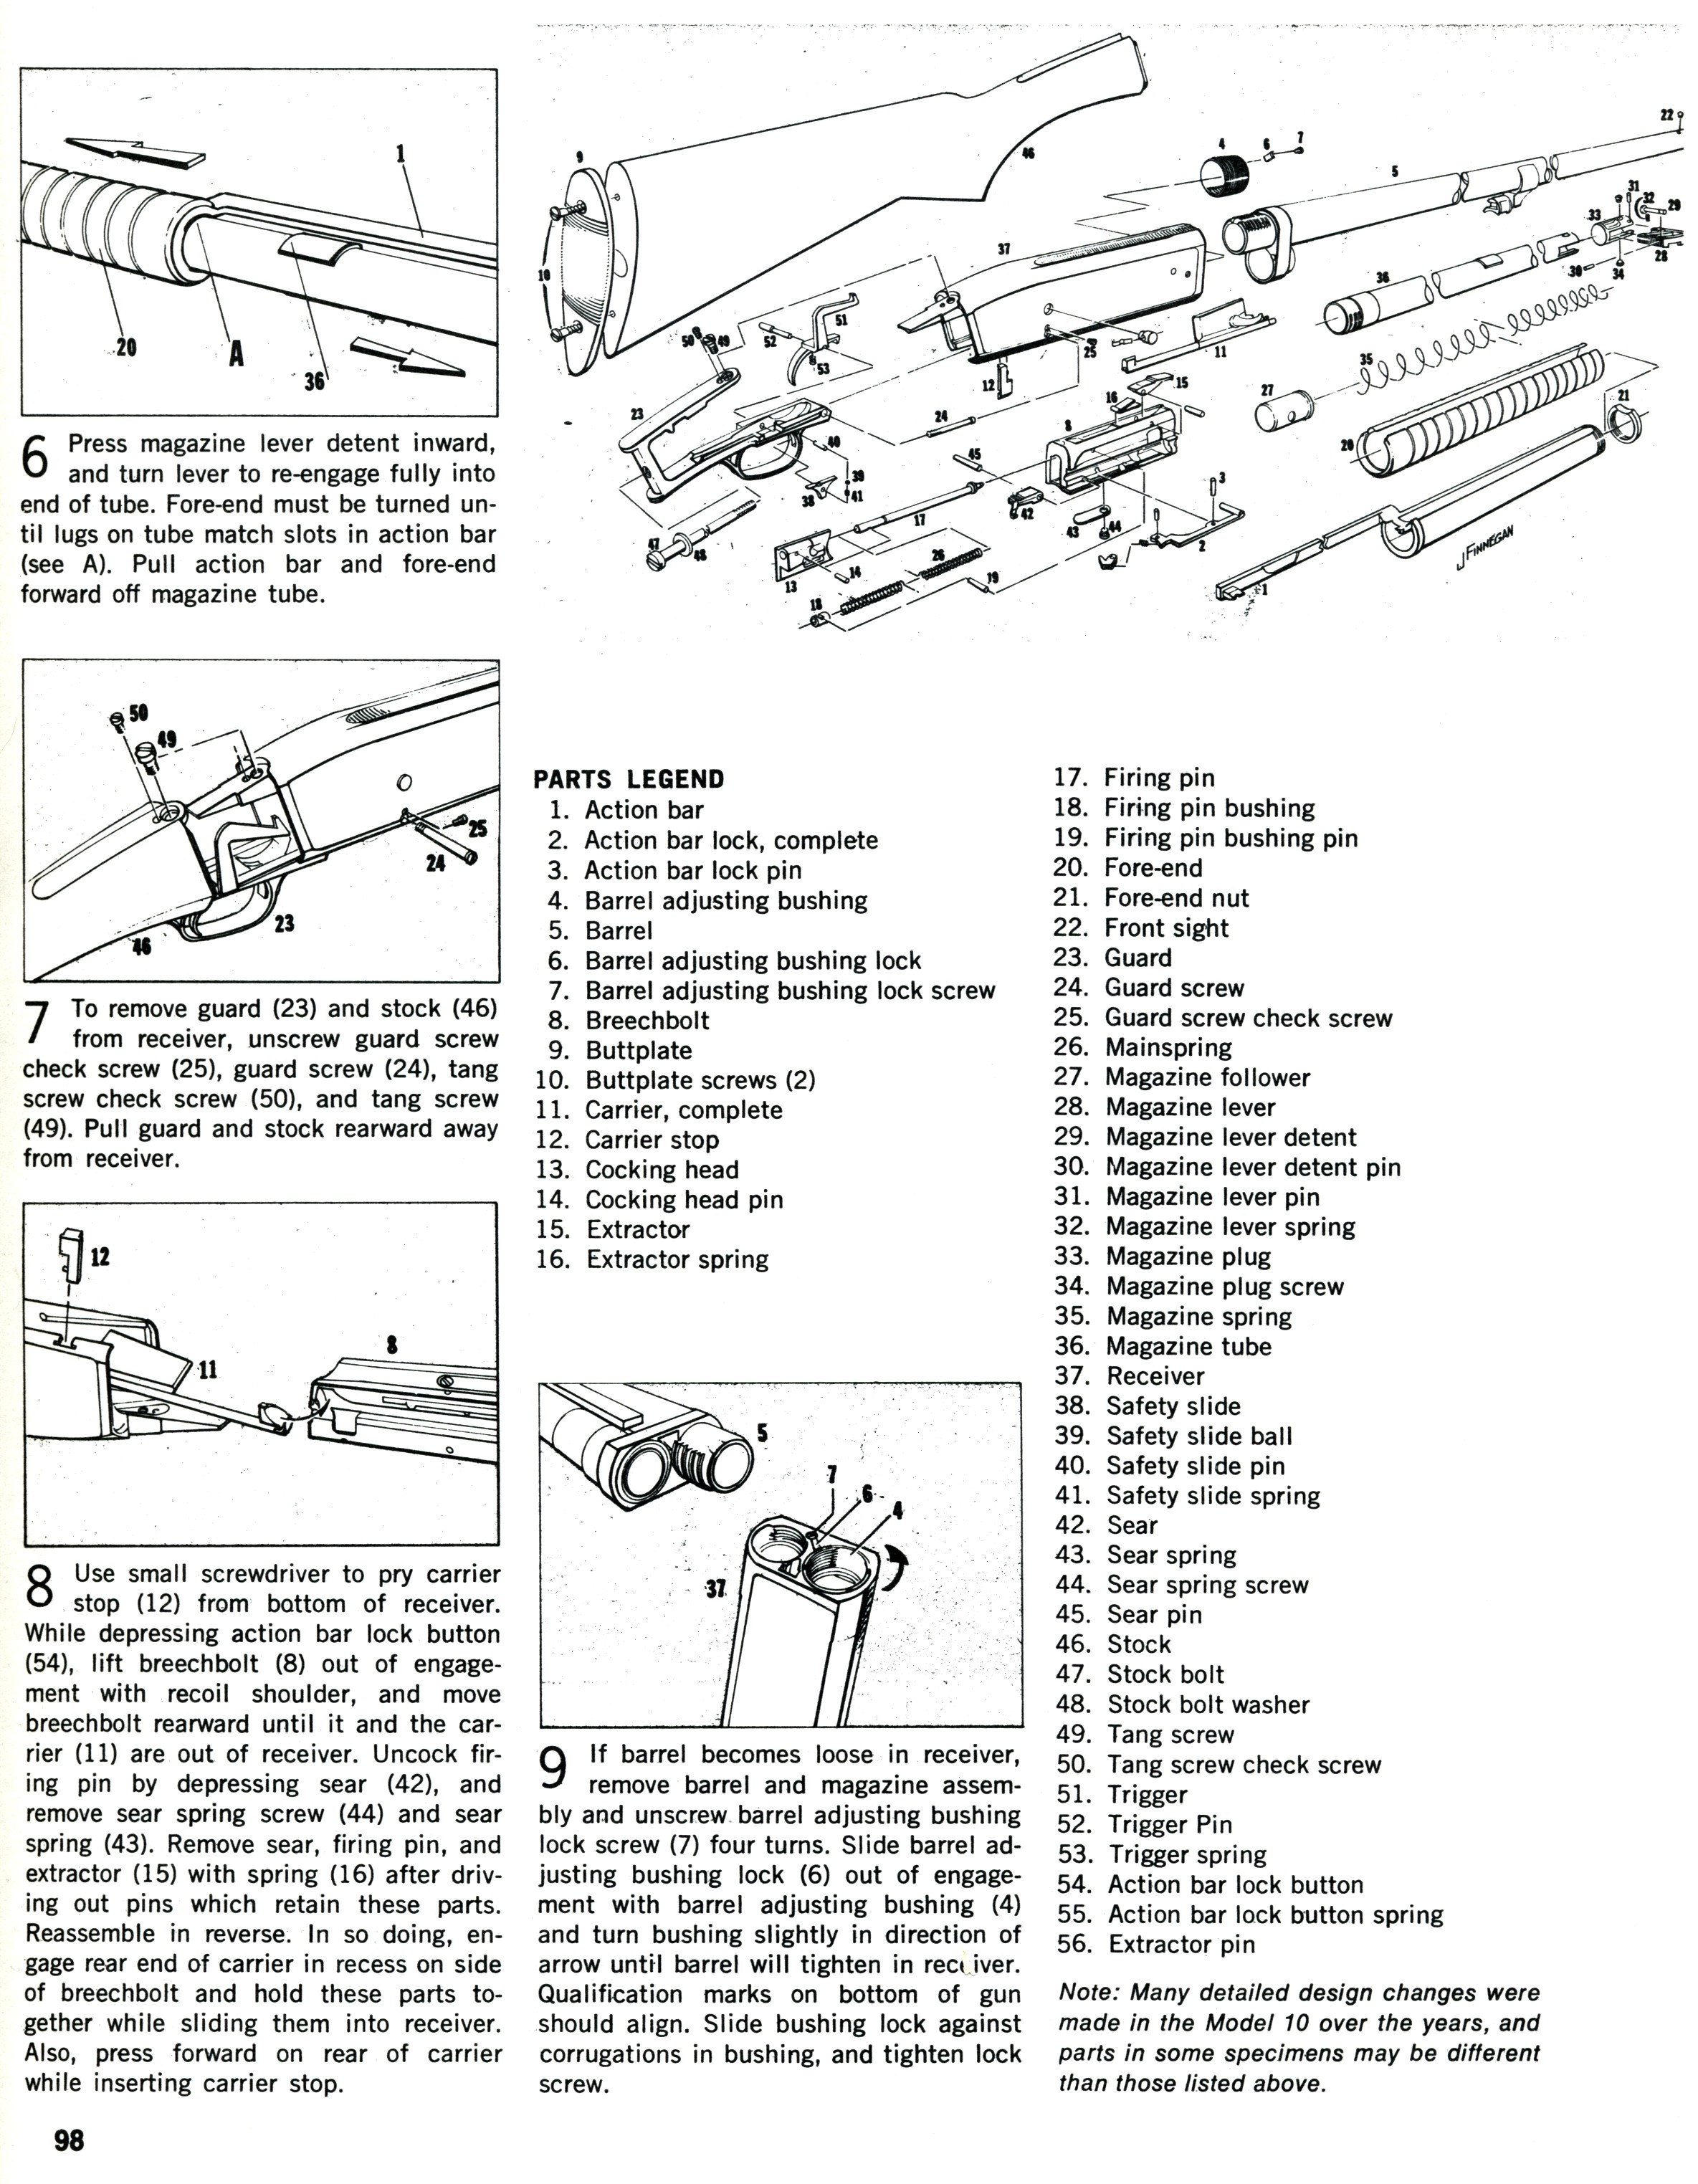 Am77 Parts Diagram Remington Excellent Electrical Wiring Fotos Breakdown Airmaster 77 Repair Manual Rh Aeha Org 11 87 700